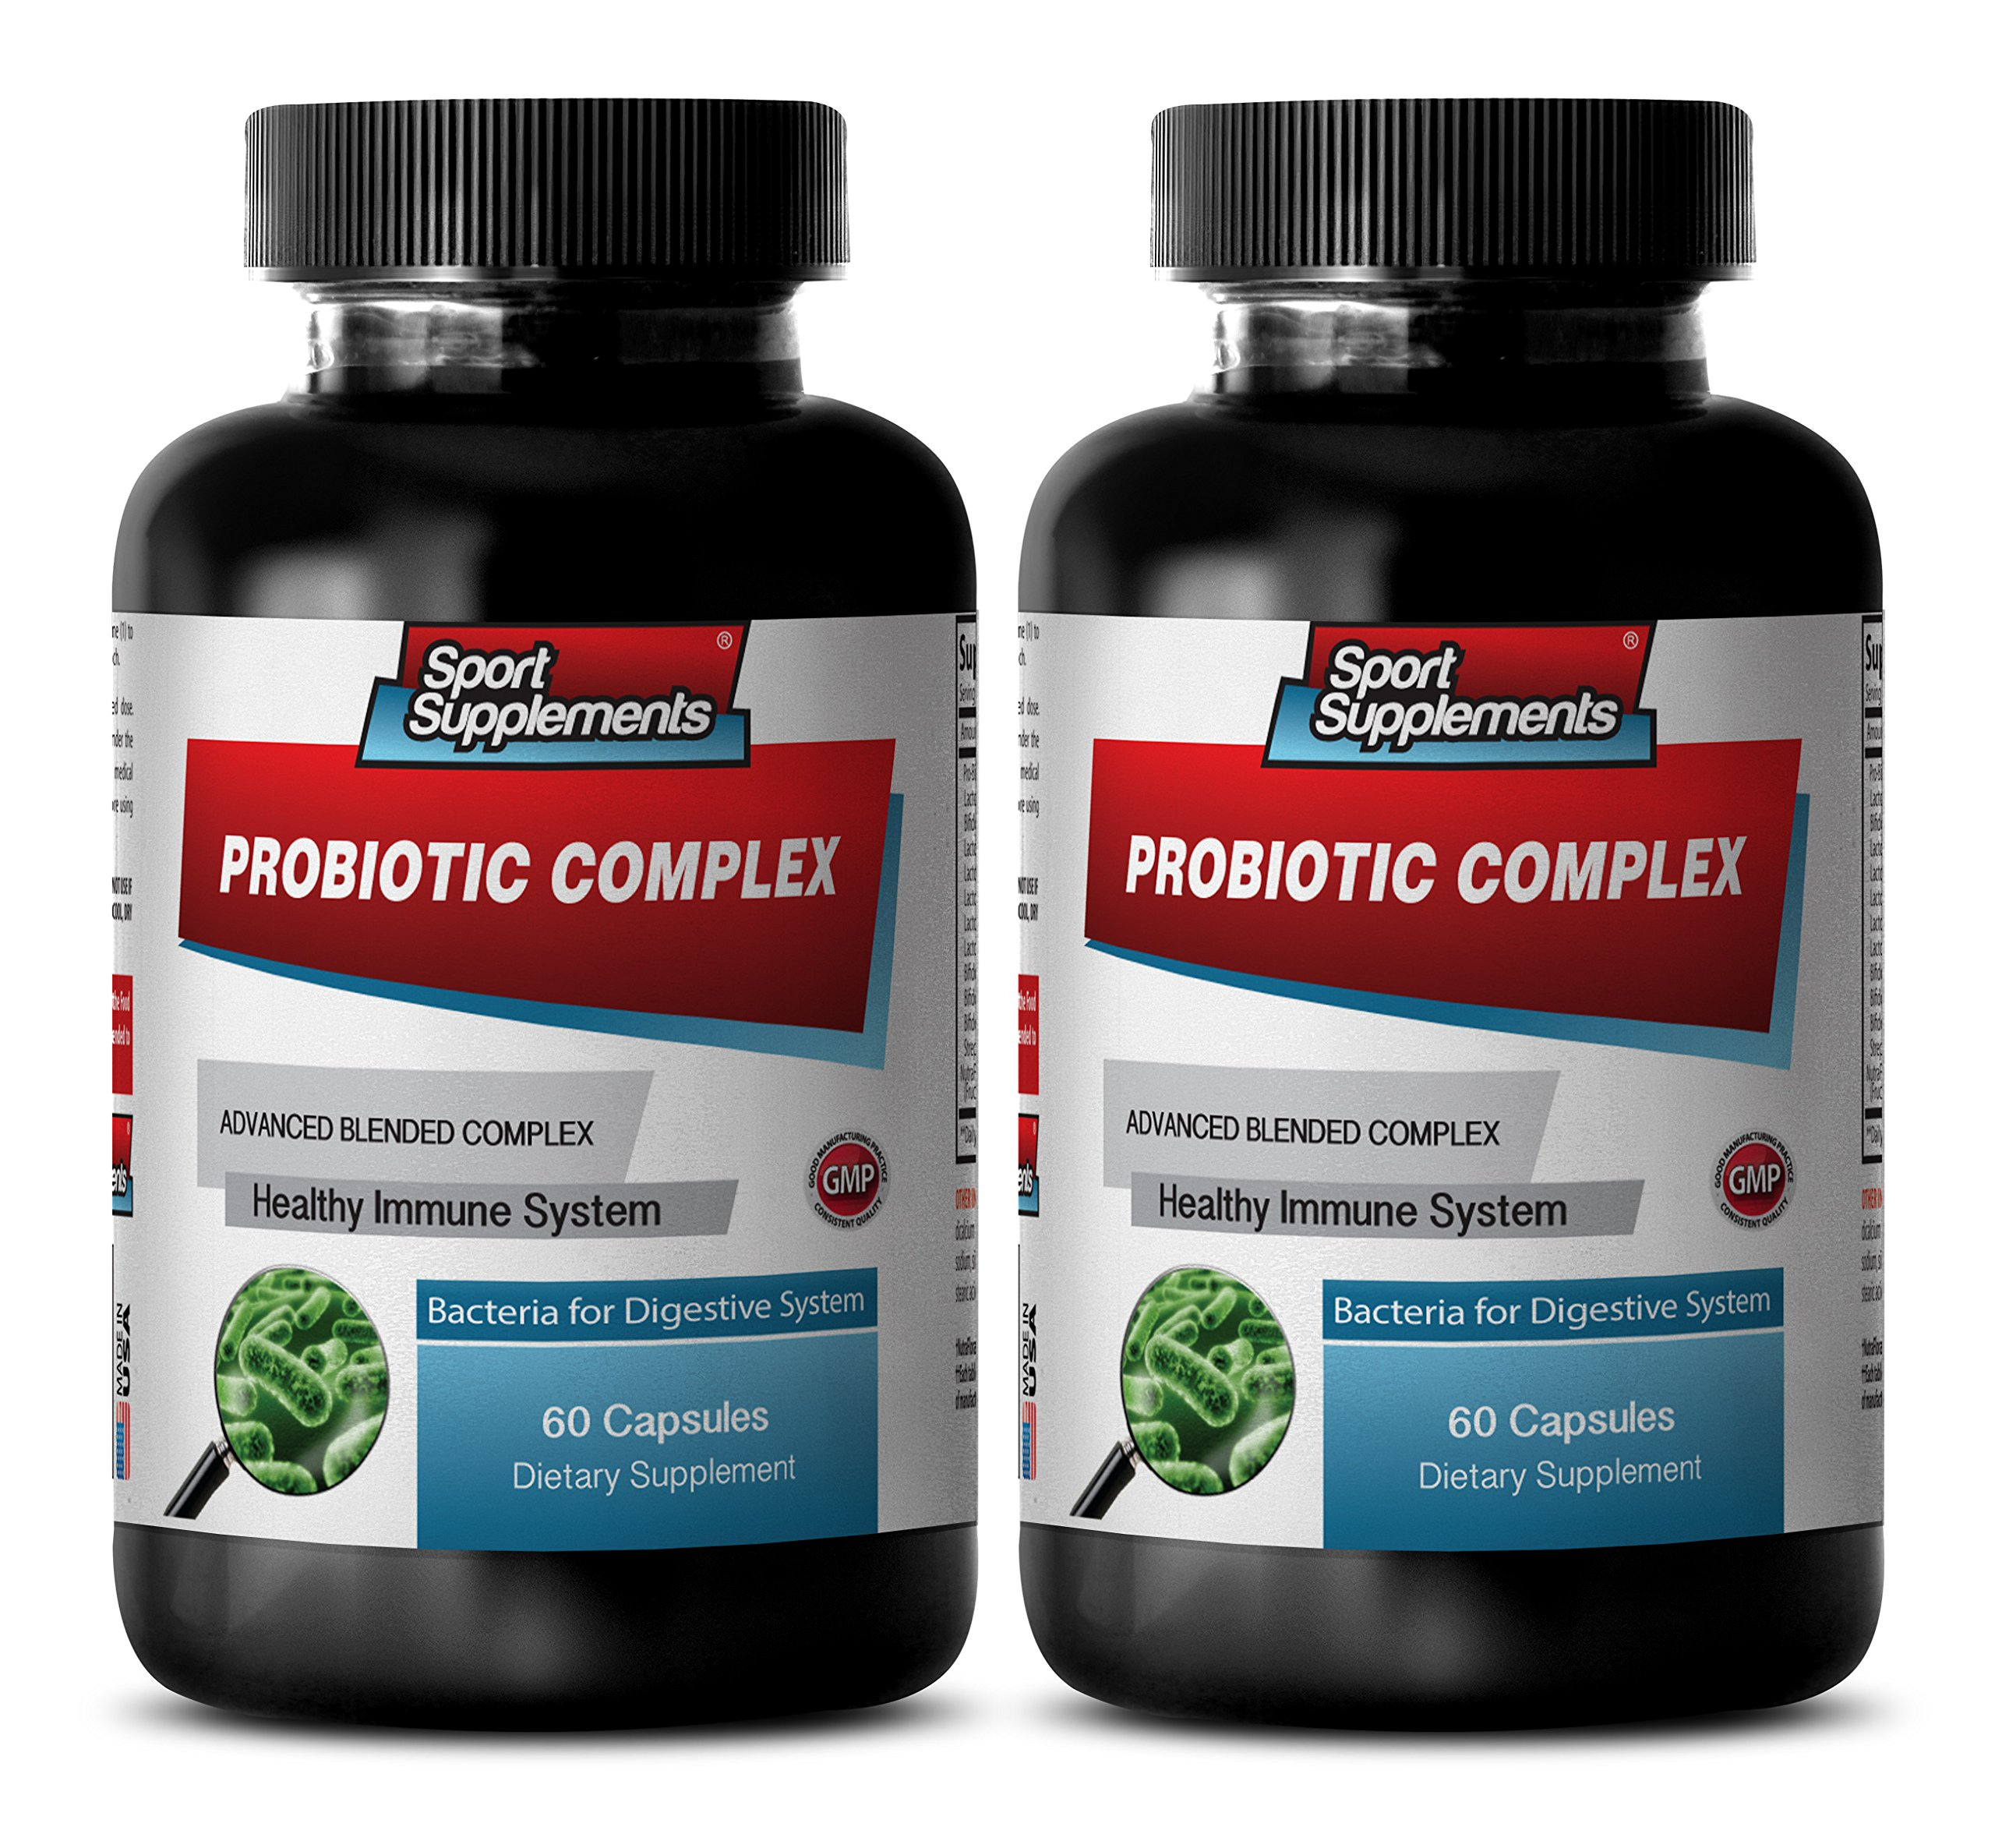 Yeast cleanse diet - PROBIOTIC ADVANCED BLENDED COMPLEX FOR DIGESTIVE SYSTEM - Probiotic yeast - 2 Bottles 120 capsules